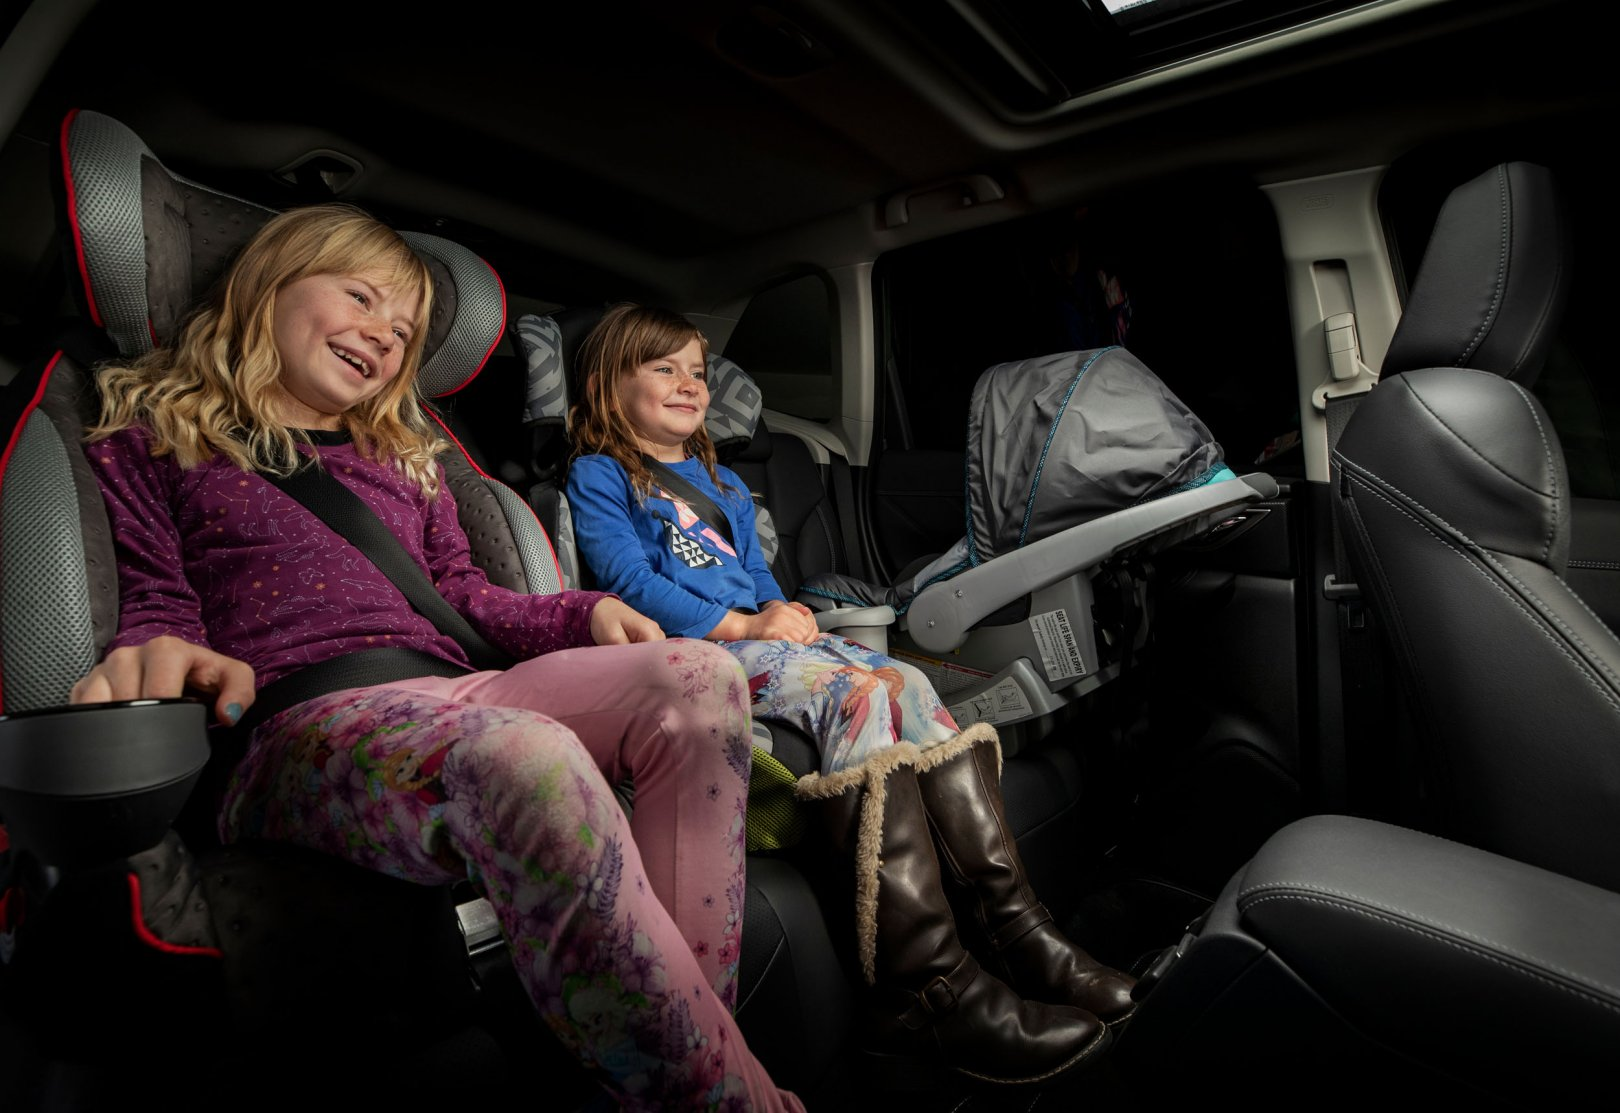 2019 Subaru Forester family friendly interior